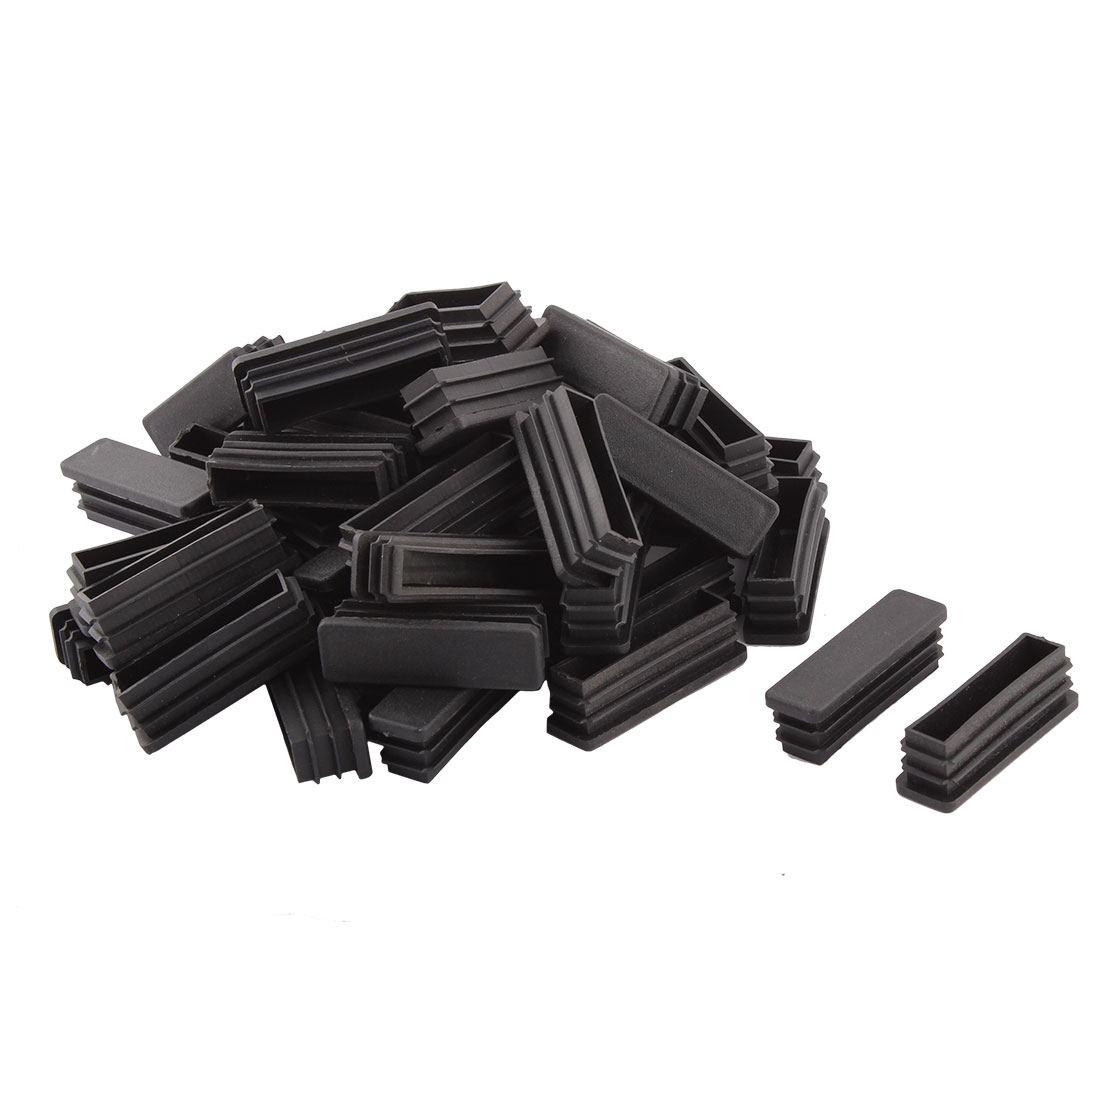 Household Plastic Rectangular Shaped Table Sofa Leg Feet Tube Pipe Insert Black 15 x 50mm 50 PCS